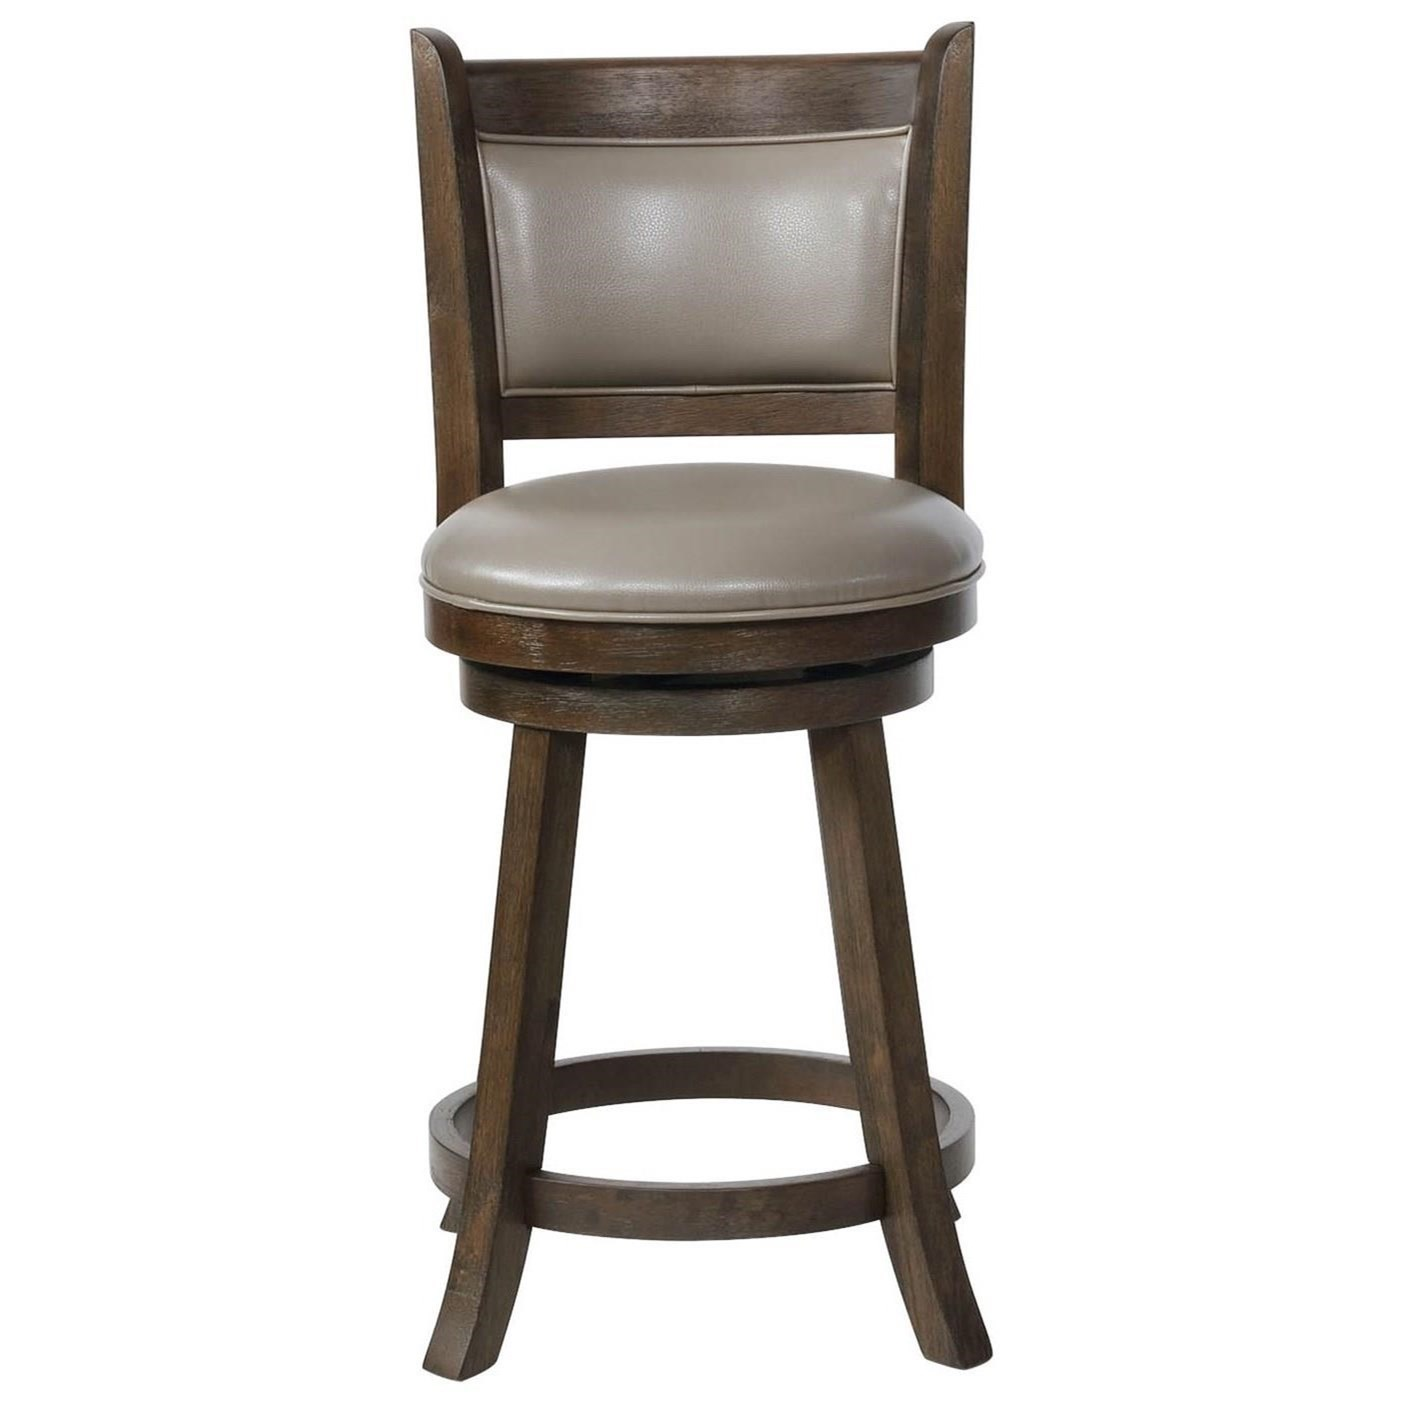 counter height bar chairs chair covers for hire polokwane crown mark stools cm swivel stool with cmswivel